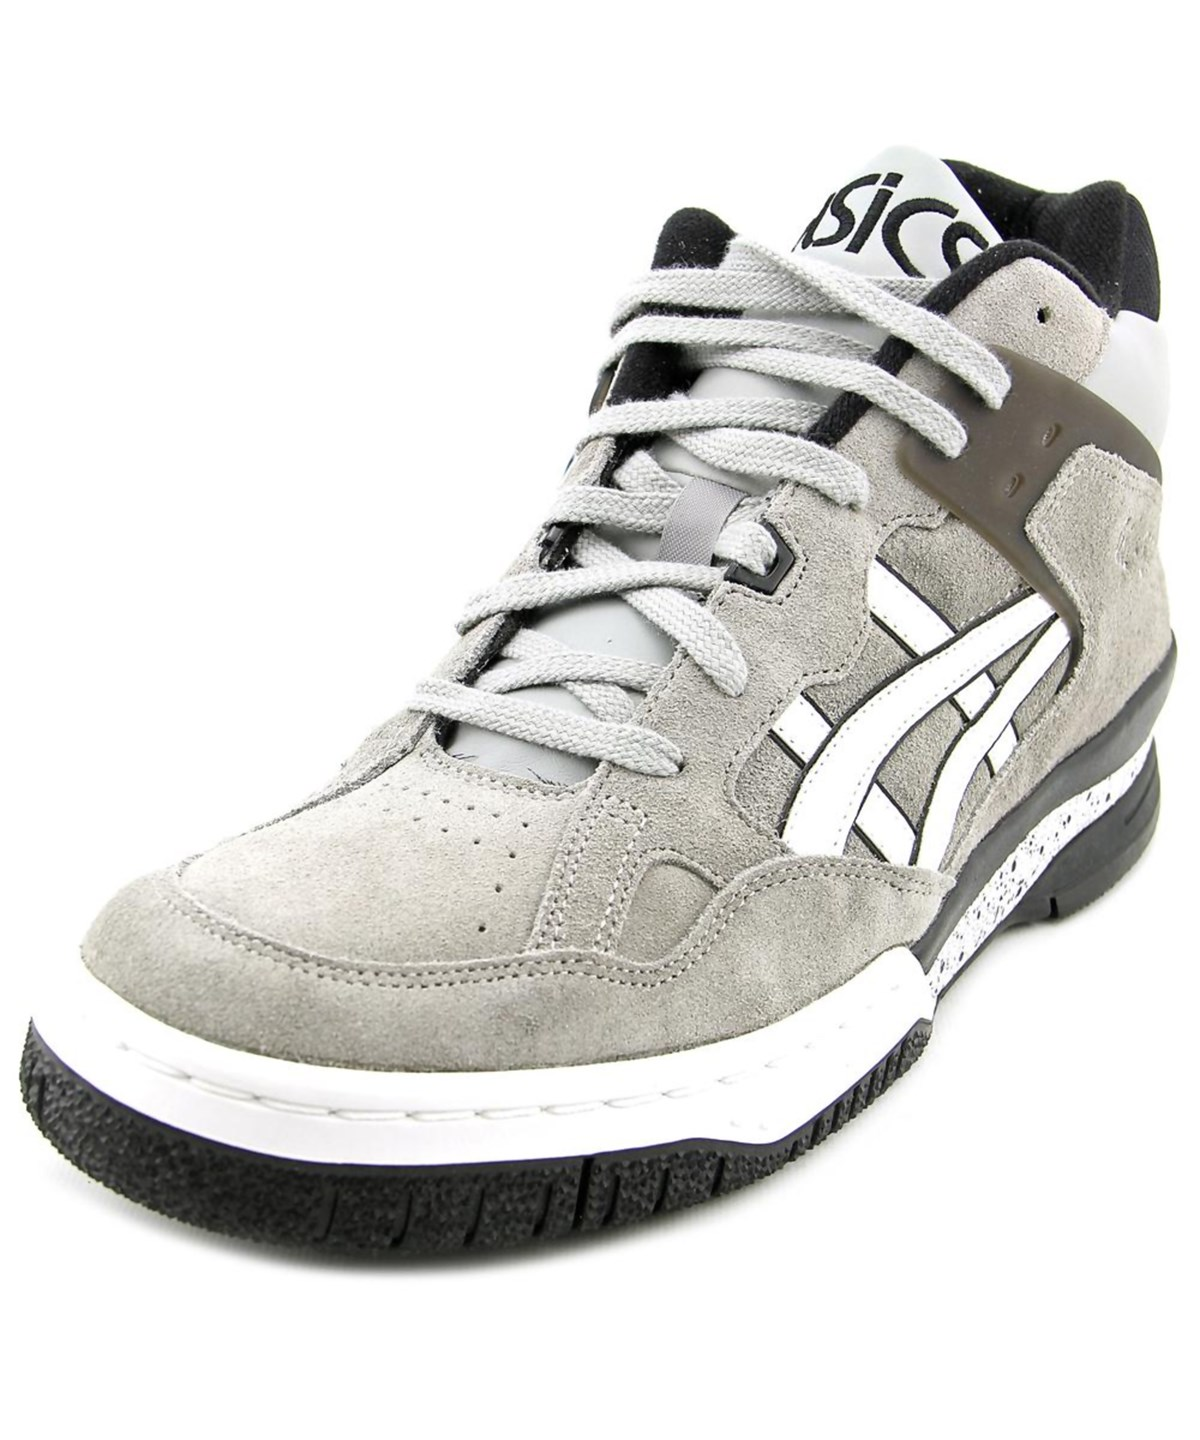 chaussures de sport 7d845 7eb57 Asics Gel-Spotlyte Men Round Toe Leather Gray Sneakers' in Grey